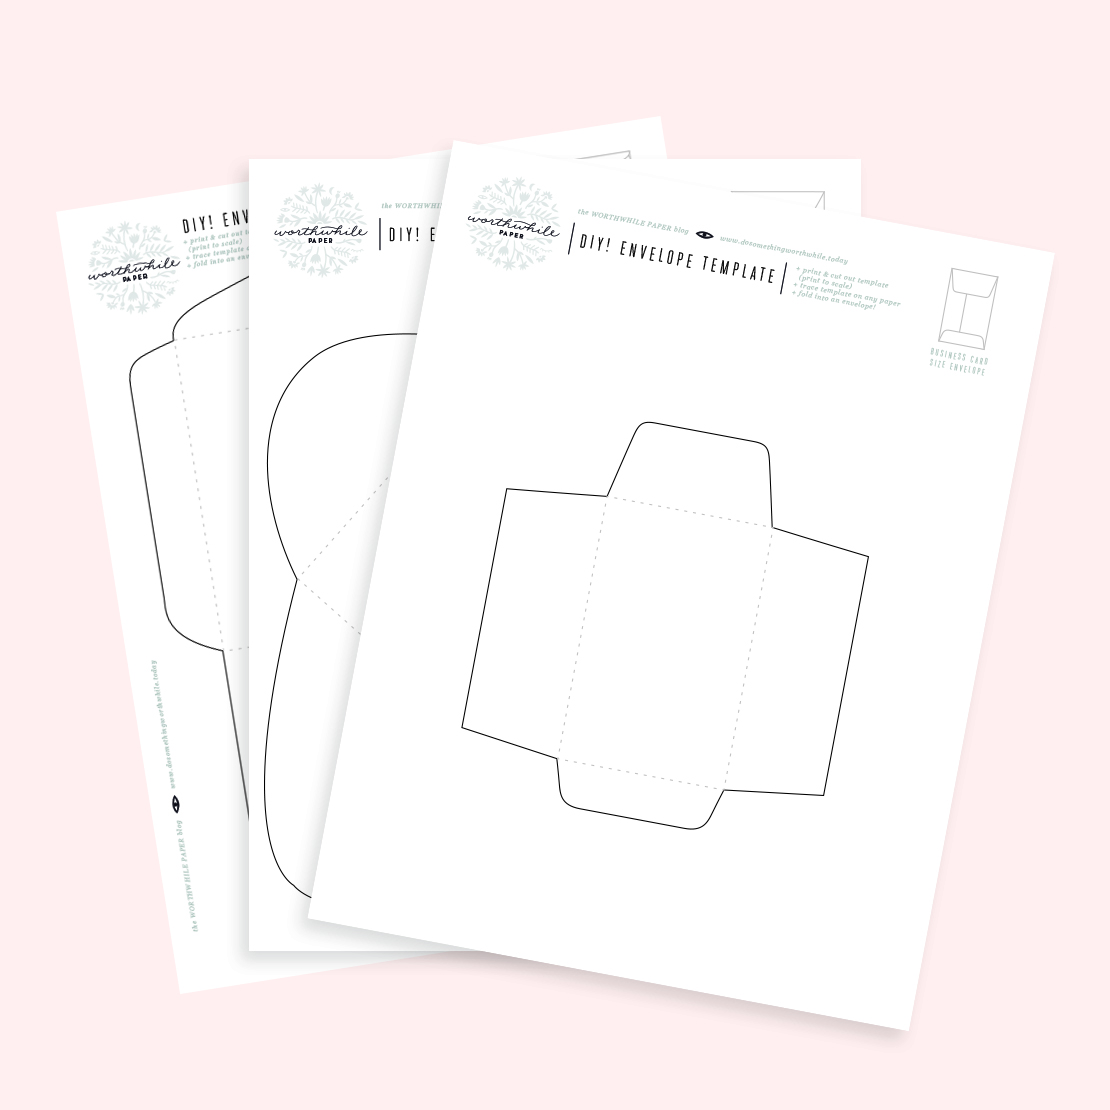 Diy envelopes with free printable templates for Free templates for envelopes to print